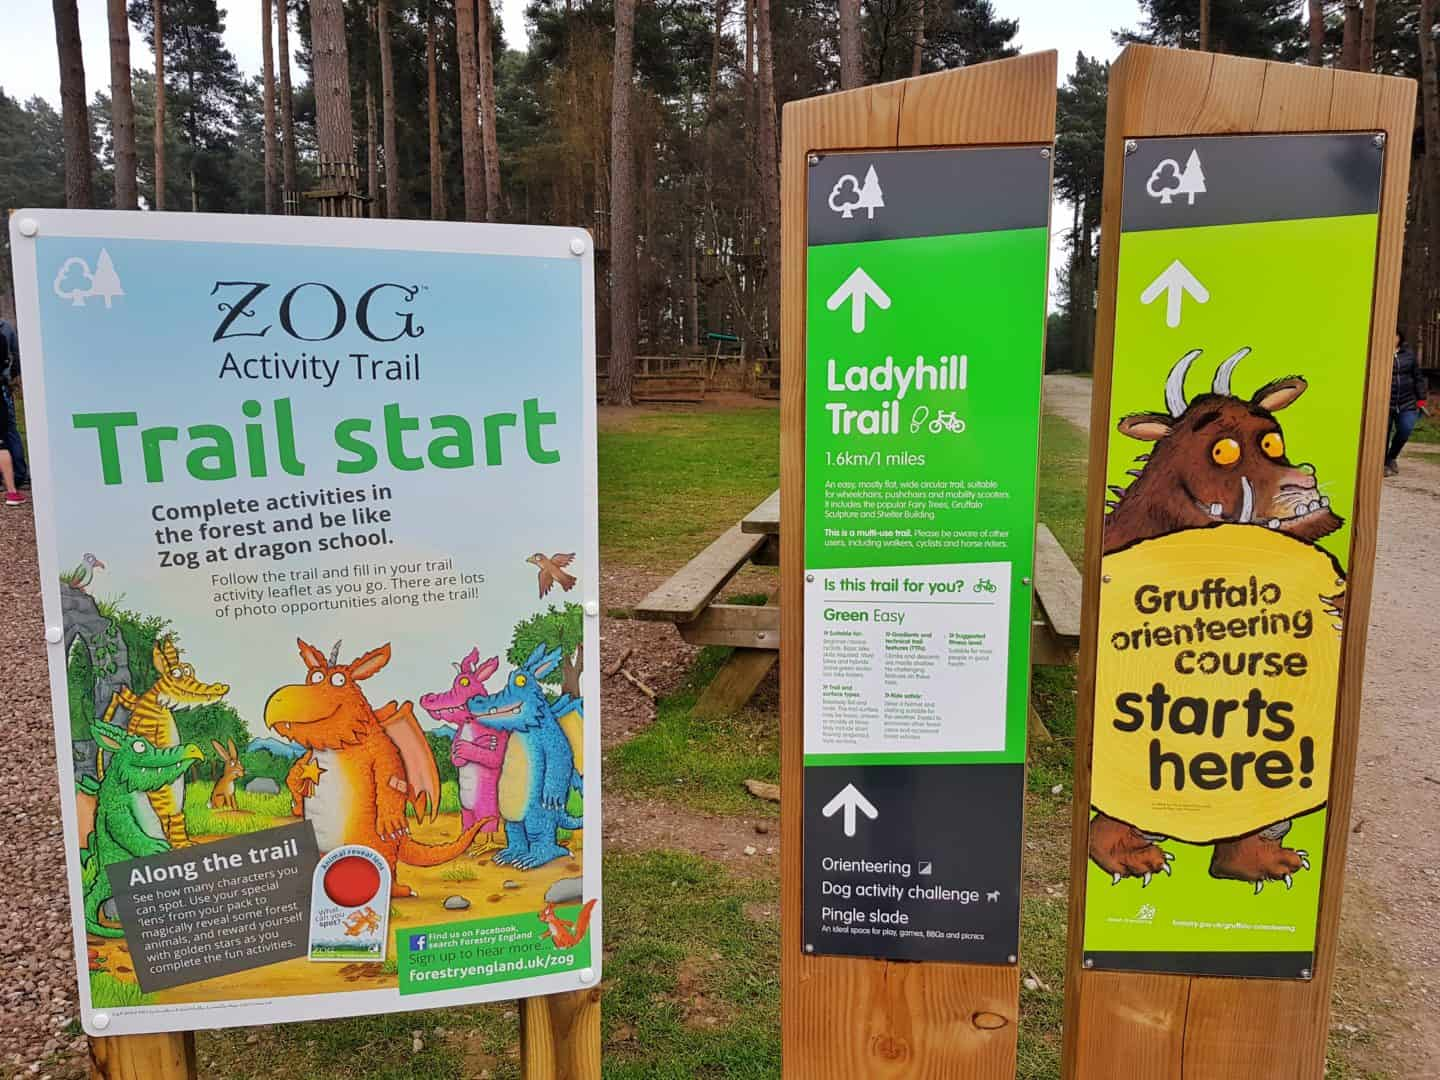 Zog activity trail Cannock Chase Forest Staffordshire West Midlands